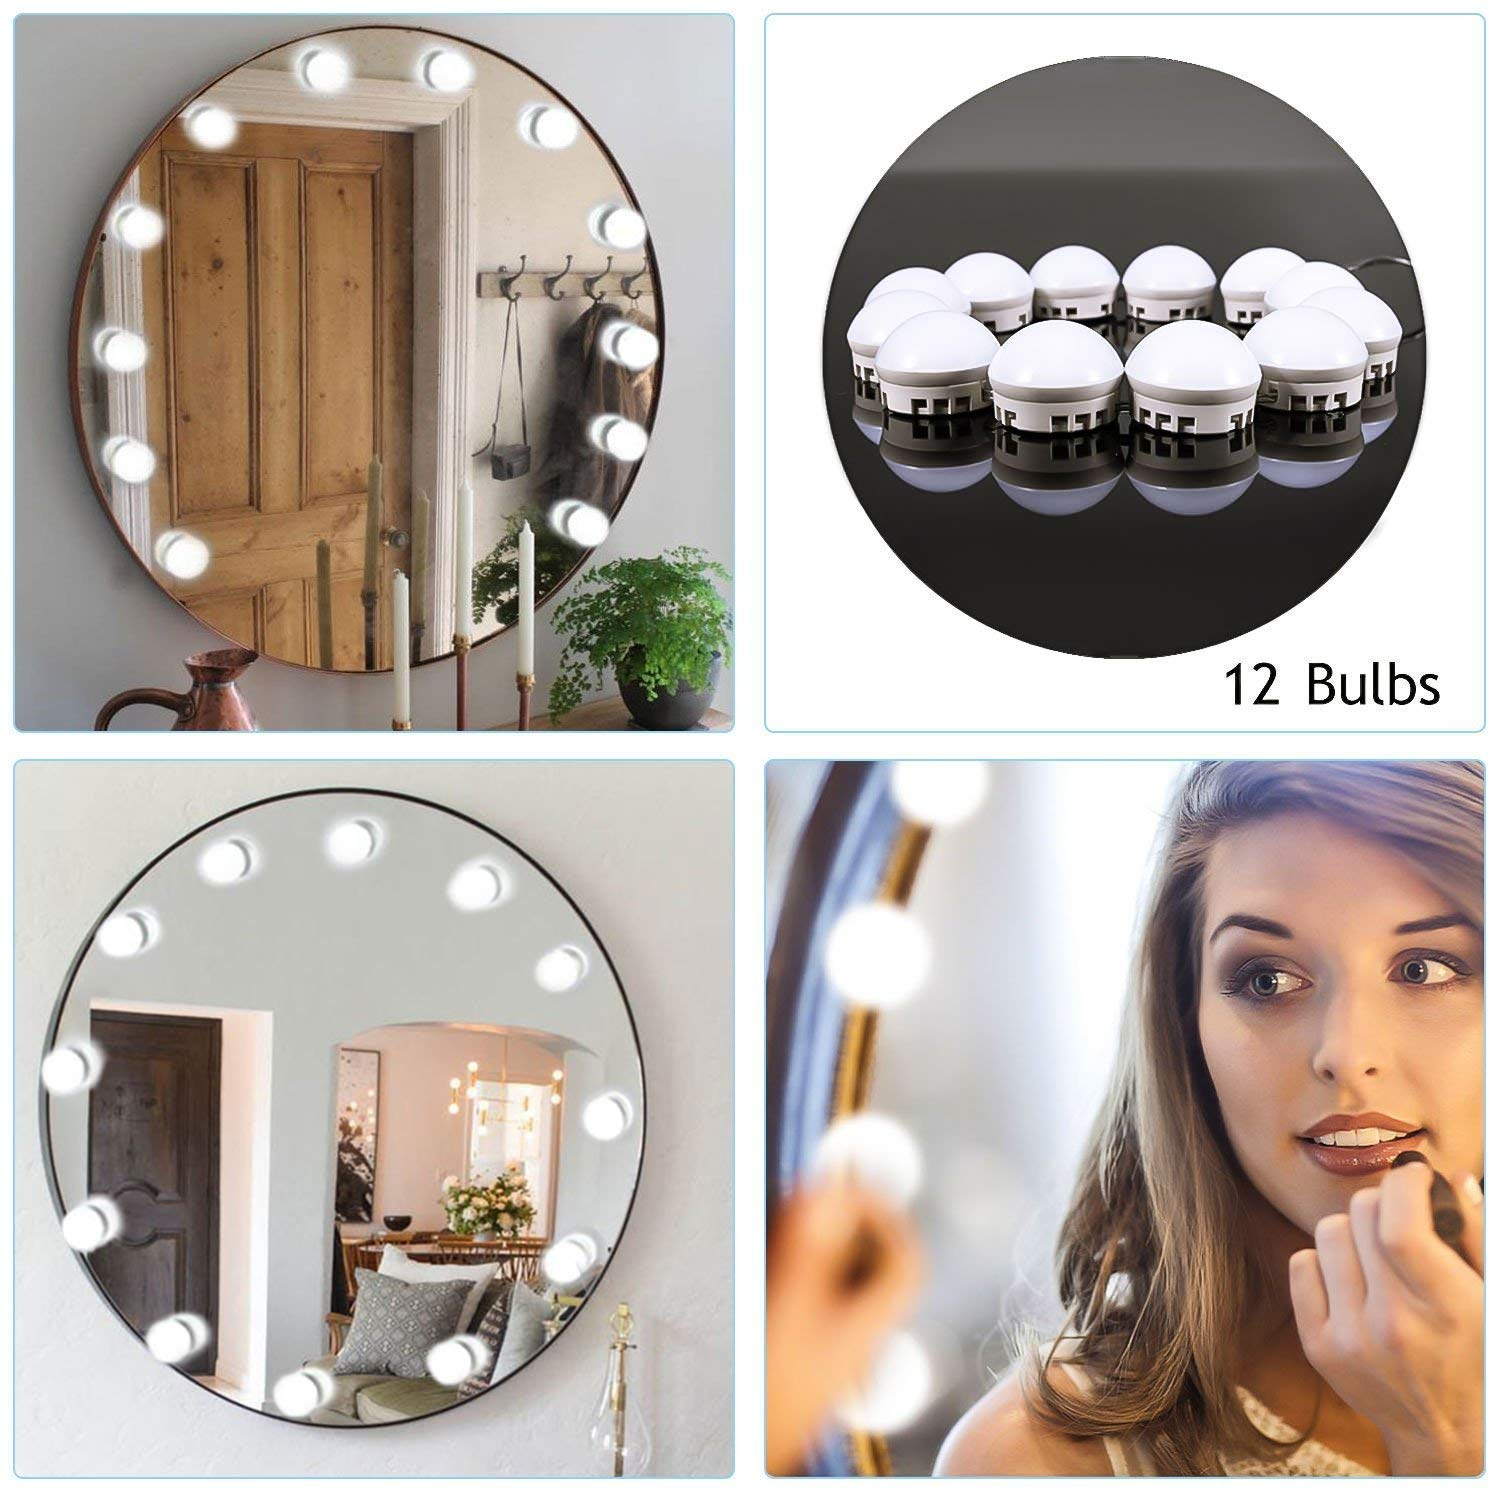 Wonstart Hollywood Mirror Lights Kit de lampes de miroir à LED Vanity Set de miroirs avec 12 ampoules à intensité variable, bande de luminaire pour l'ensemble de coiffeuse de maquillage (miroir non inclus WDP12001